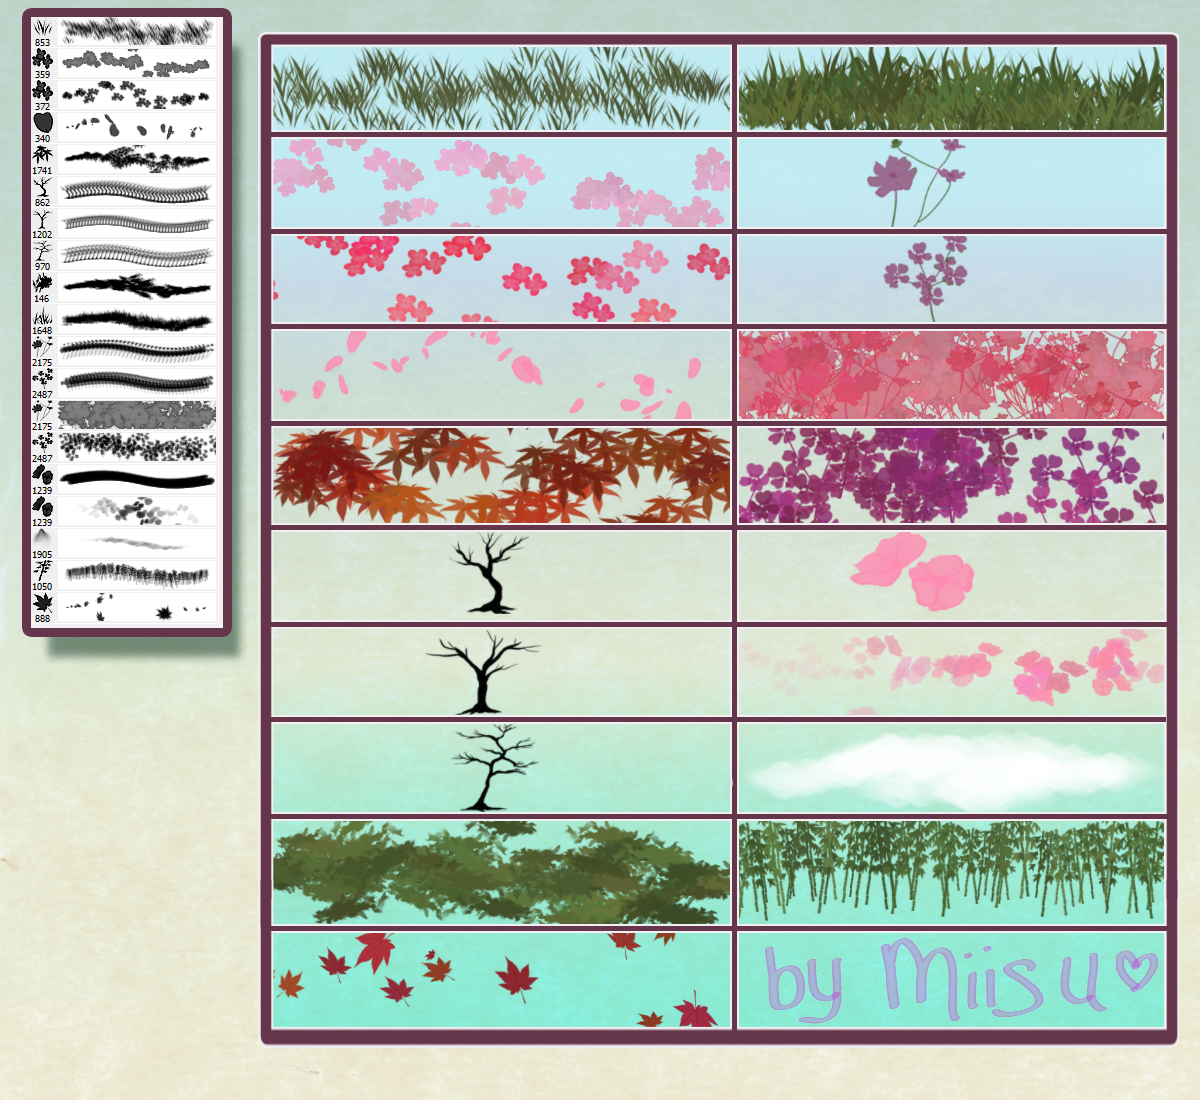 ( Hi-Res ) 19 Nature Brushes for Photoshop by Miisu